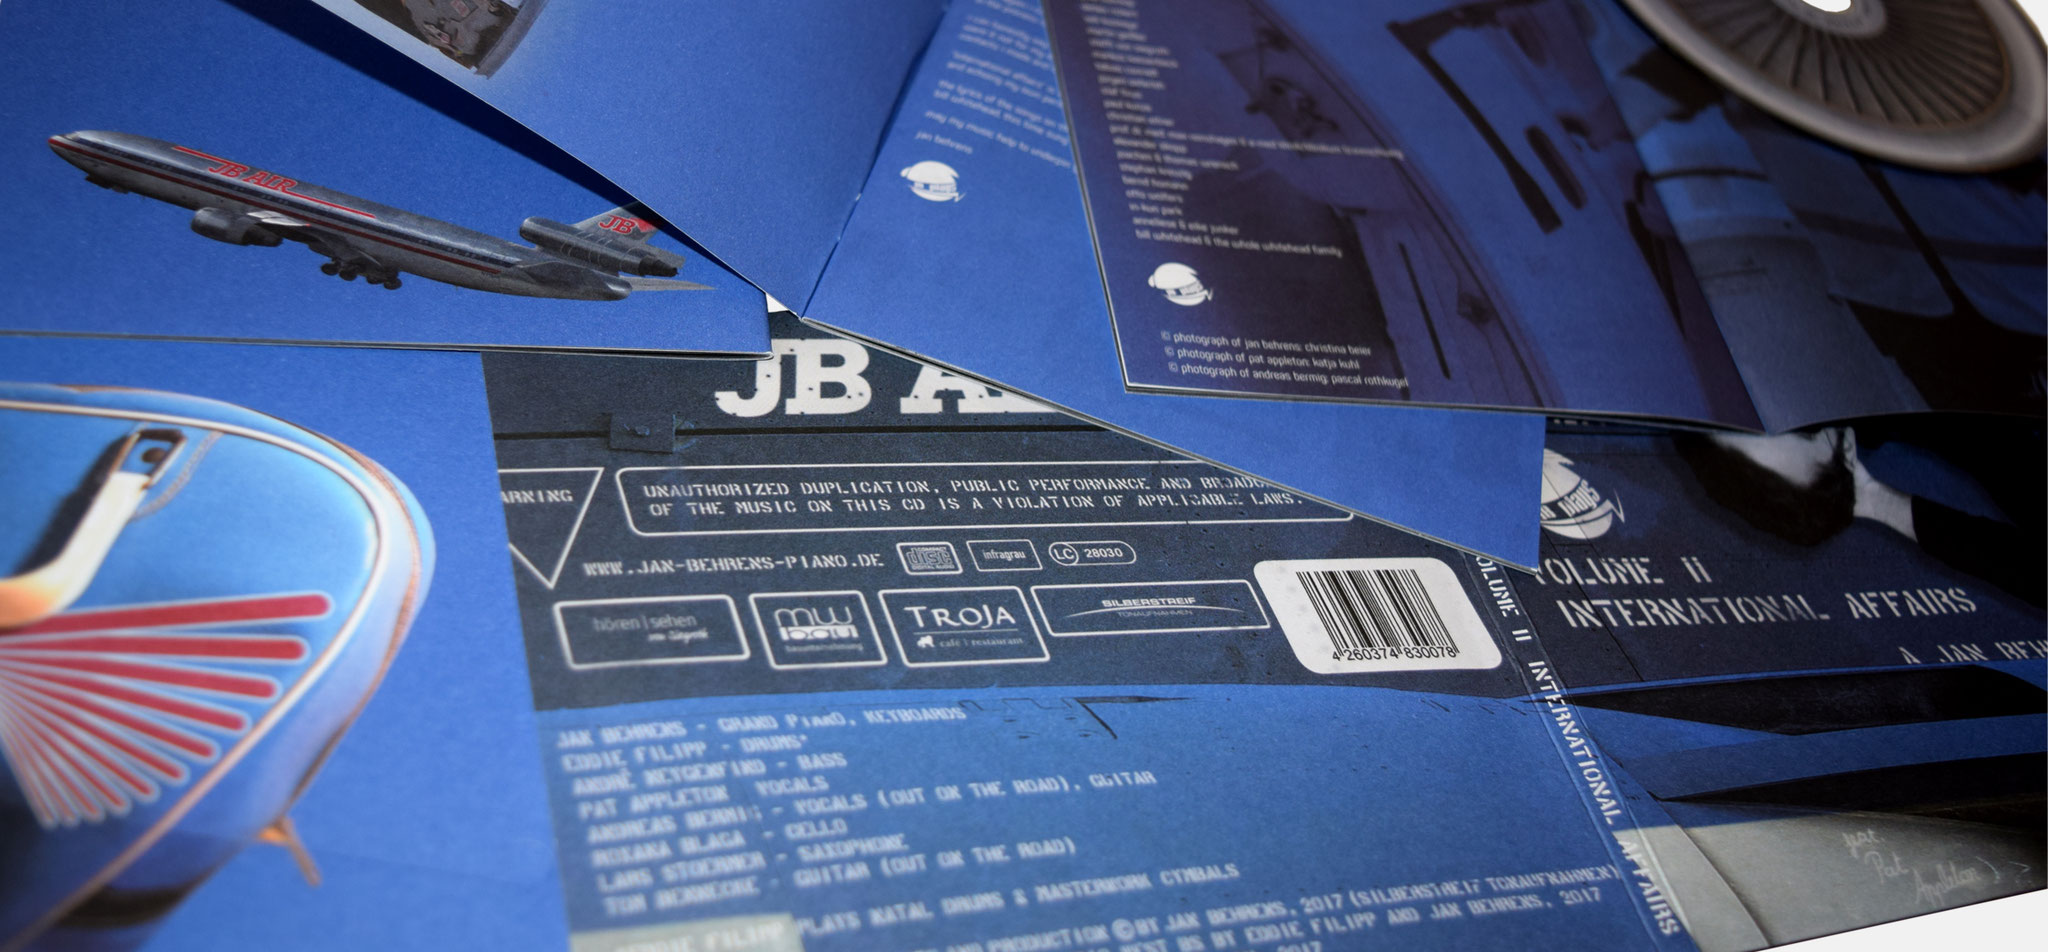 Jan Behrens, Projekt JB plays II | CD-Cover & Booklet JB plays II - infragrau, gute Gestaltung